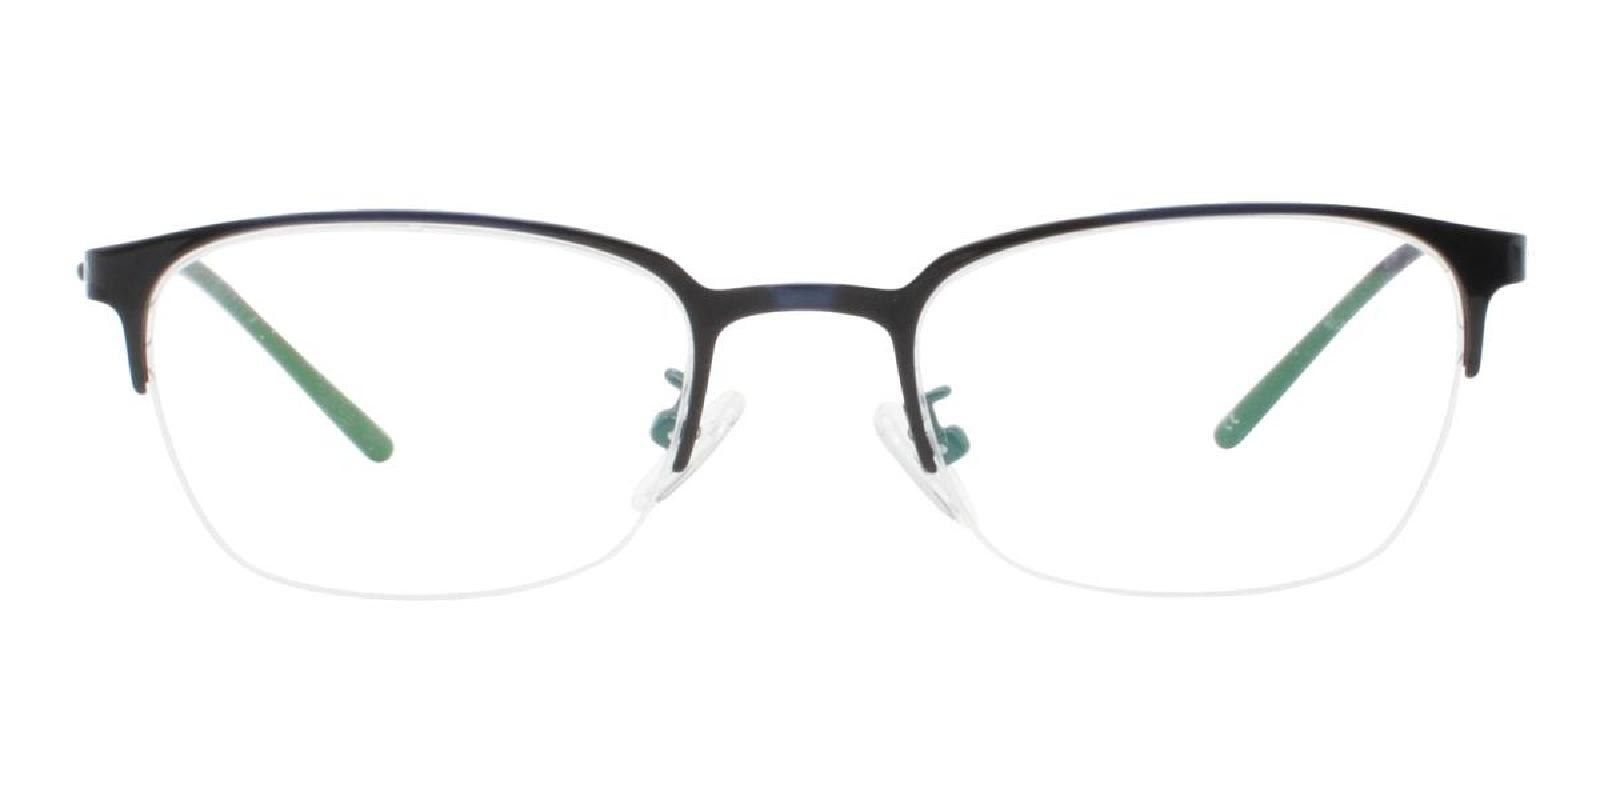 Wavain-Blue-Rectangle-Metal-Eyeglasses-additional2